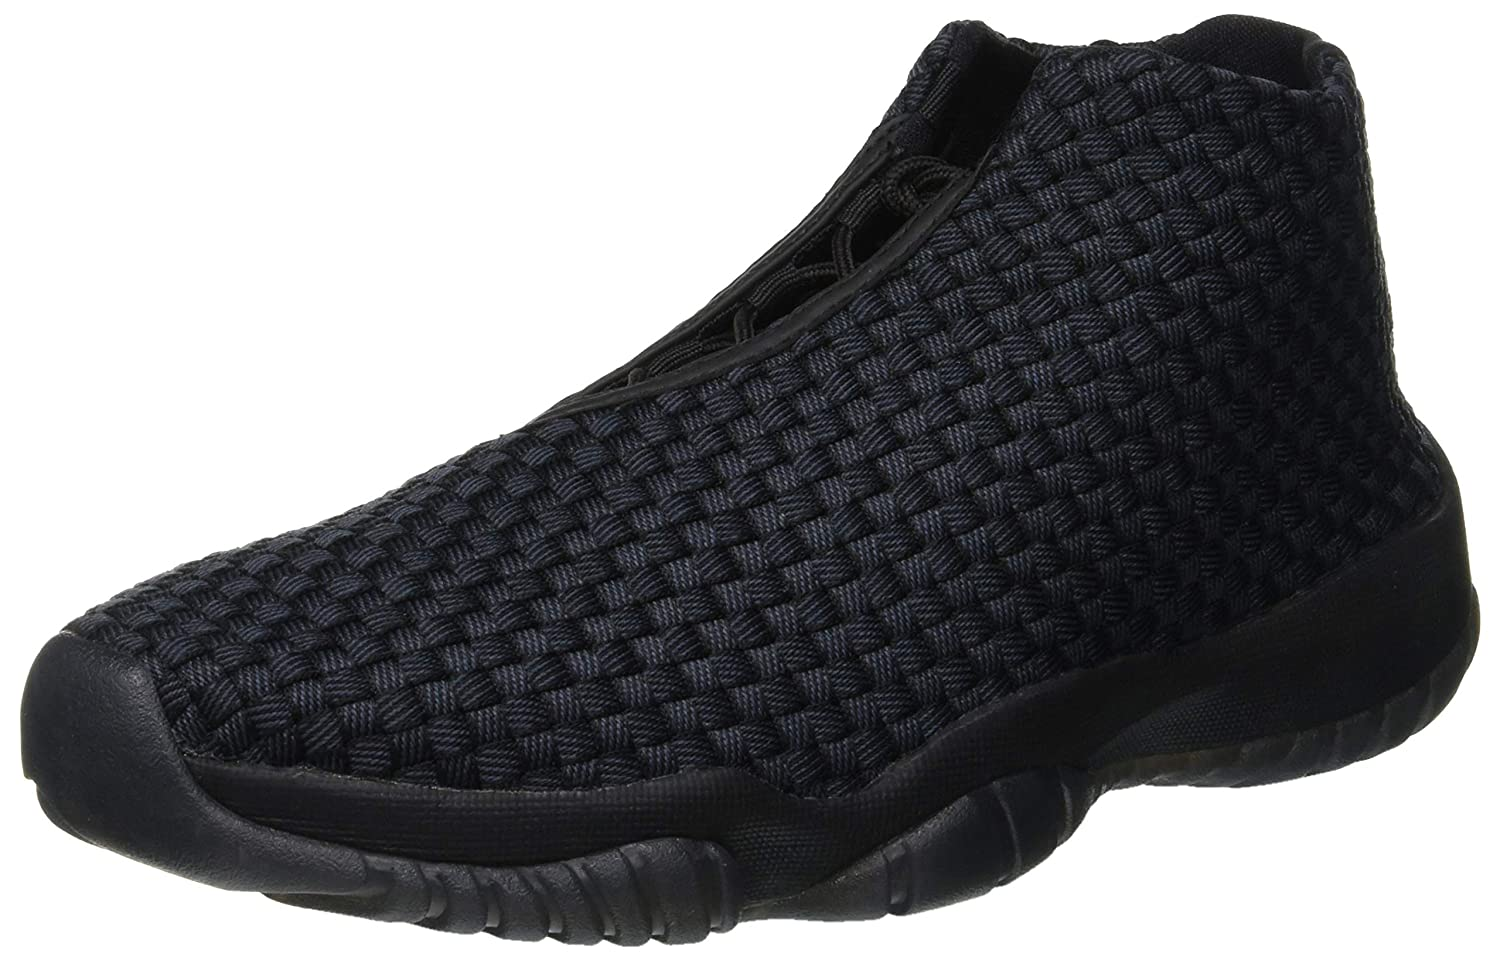 sports shoes f5dcf 50f58 Amazon.com   Jordan Nike Men s Air Future Black Black Anthracite Basketball  Shoe 9 Men US   Basketball